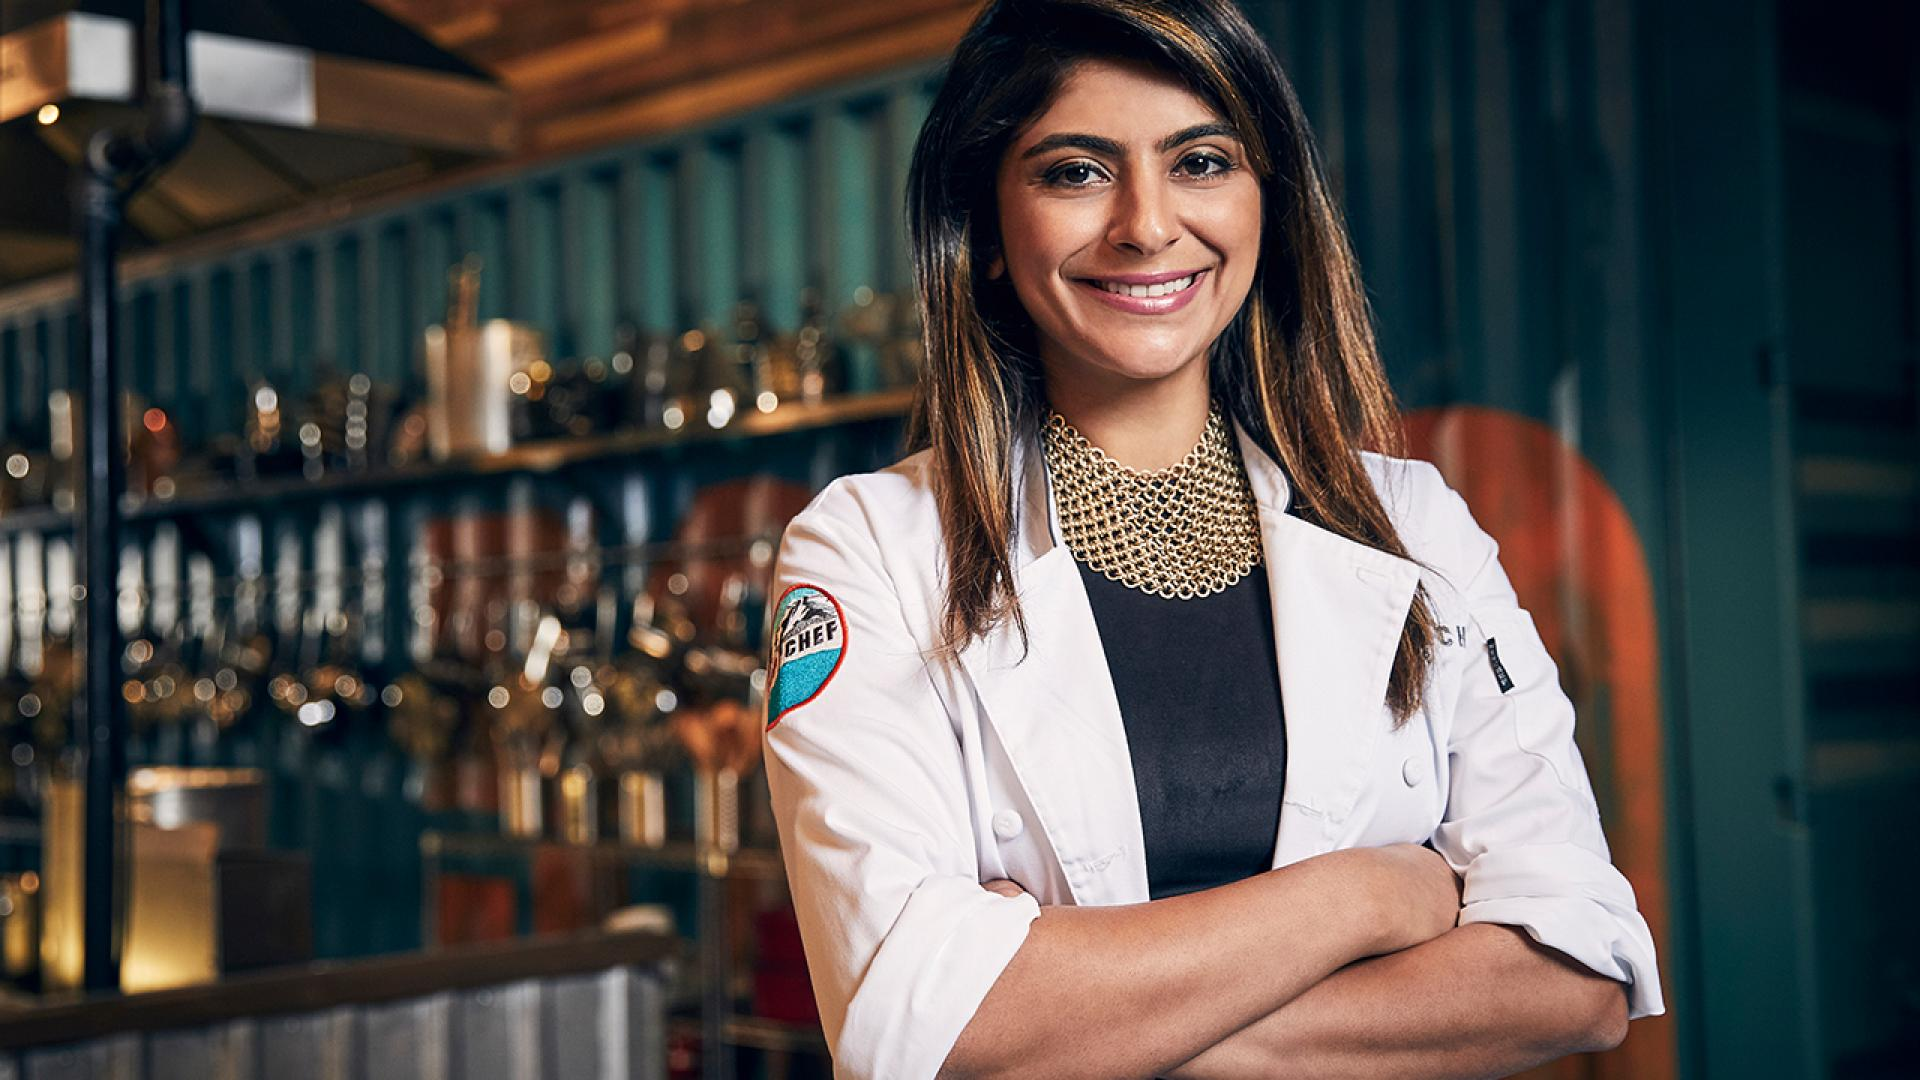 """Fatima Ali, a New York City chef who competed on """"Top Chef"""" and won """"Chopped,"""" died Jan. 25 at the age of 29."""